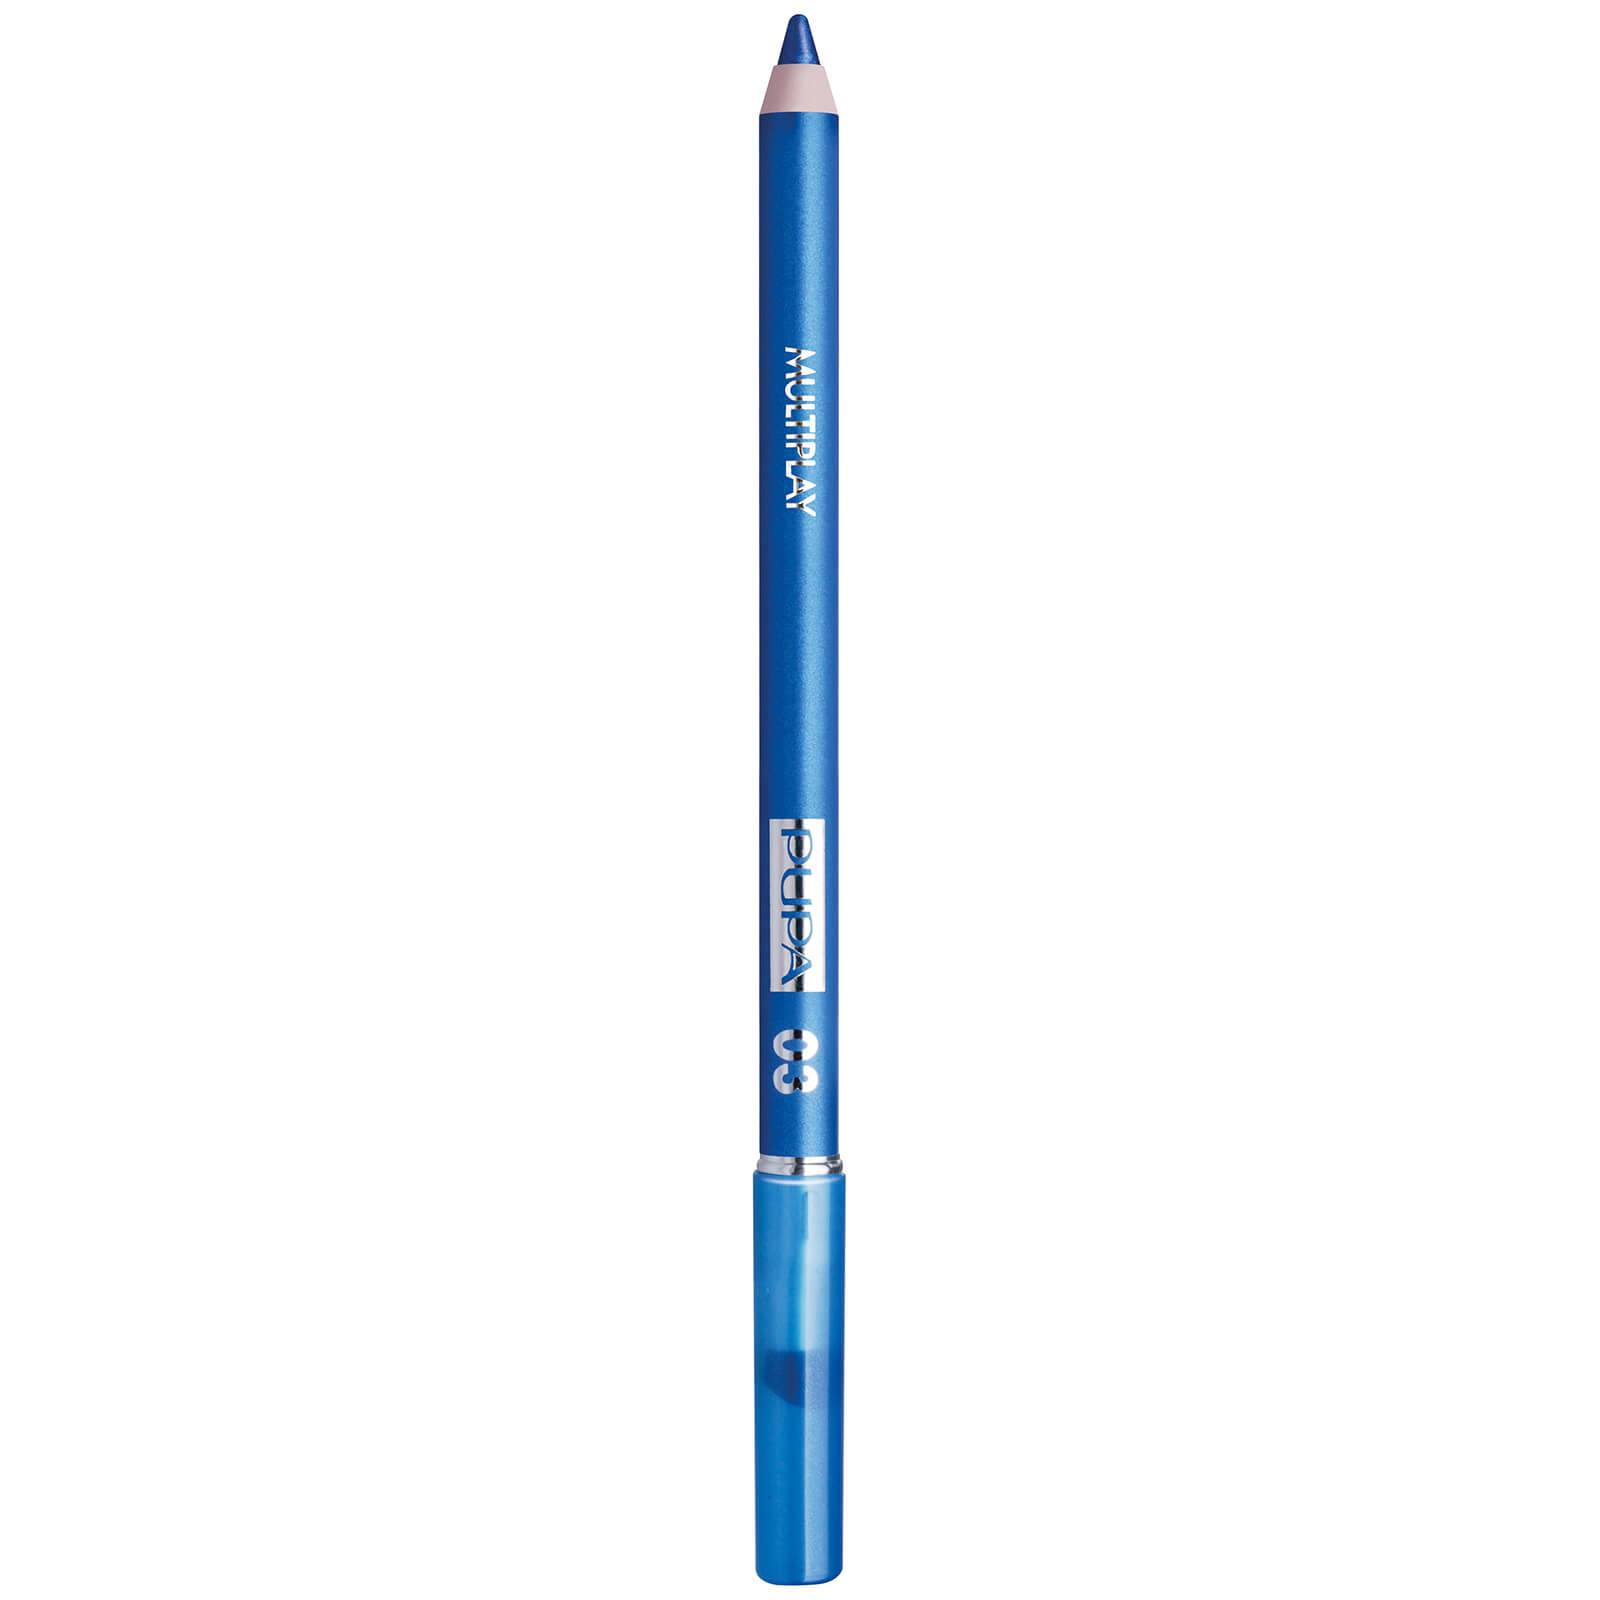 PUPA Crayon pour les Yeux Triple Objectif Multiplay PUPA (plusieurs teintes disponibles) - Pearly Sky